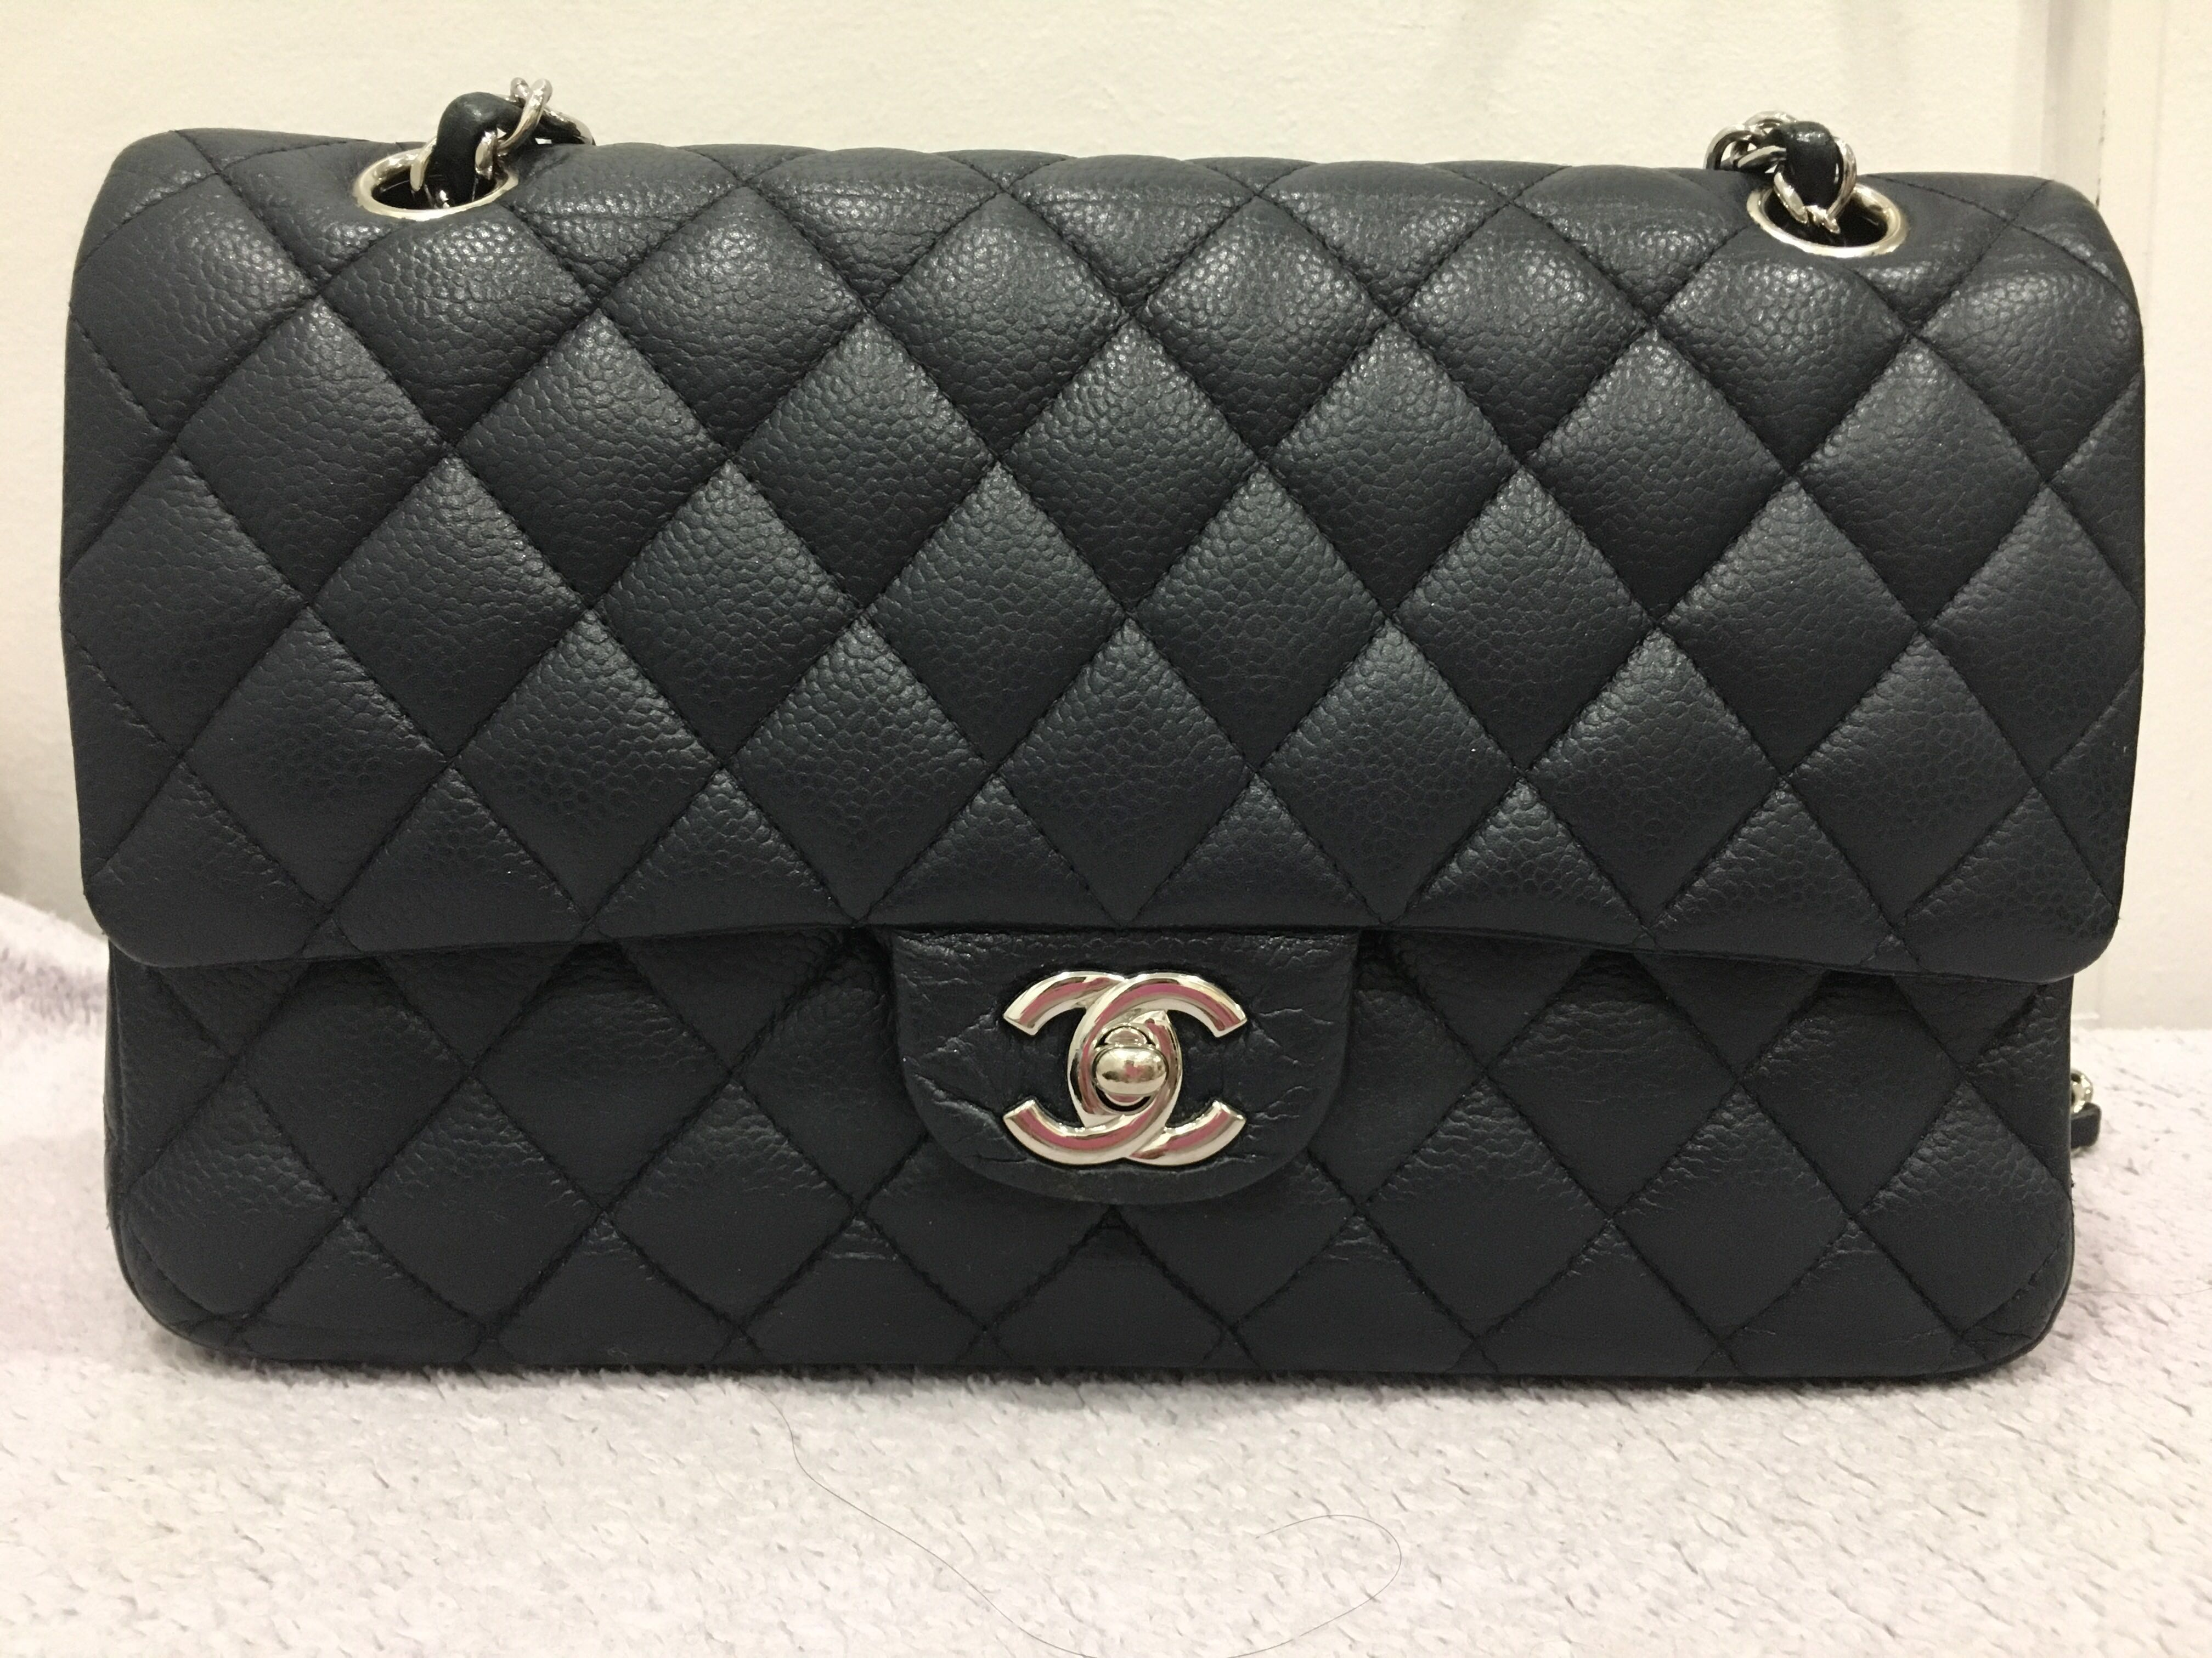 2a0dadef8918 Authentic Pre-loved Classic Chanel Caviar Medium double flap phw bag navy  blue